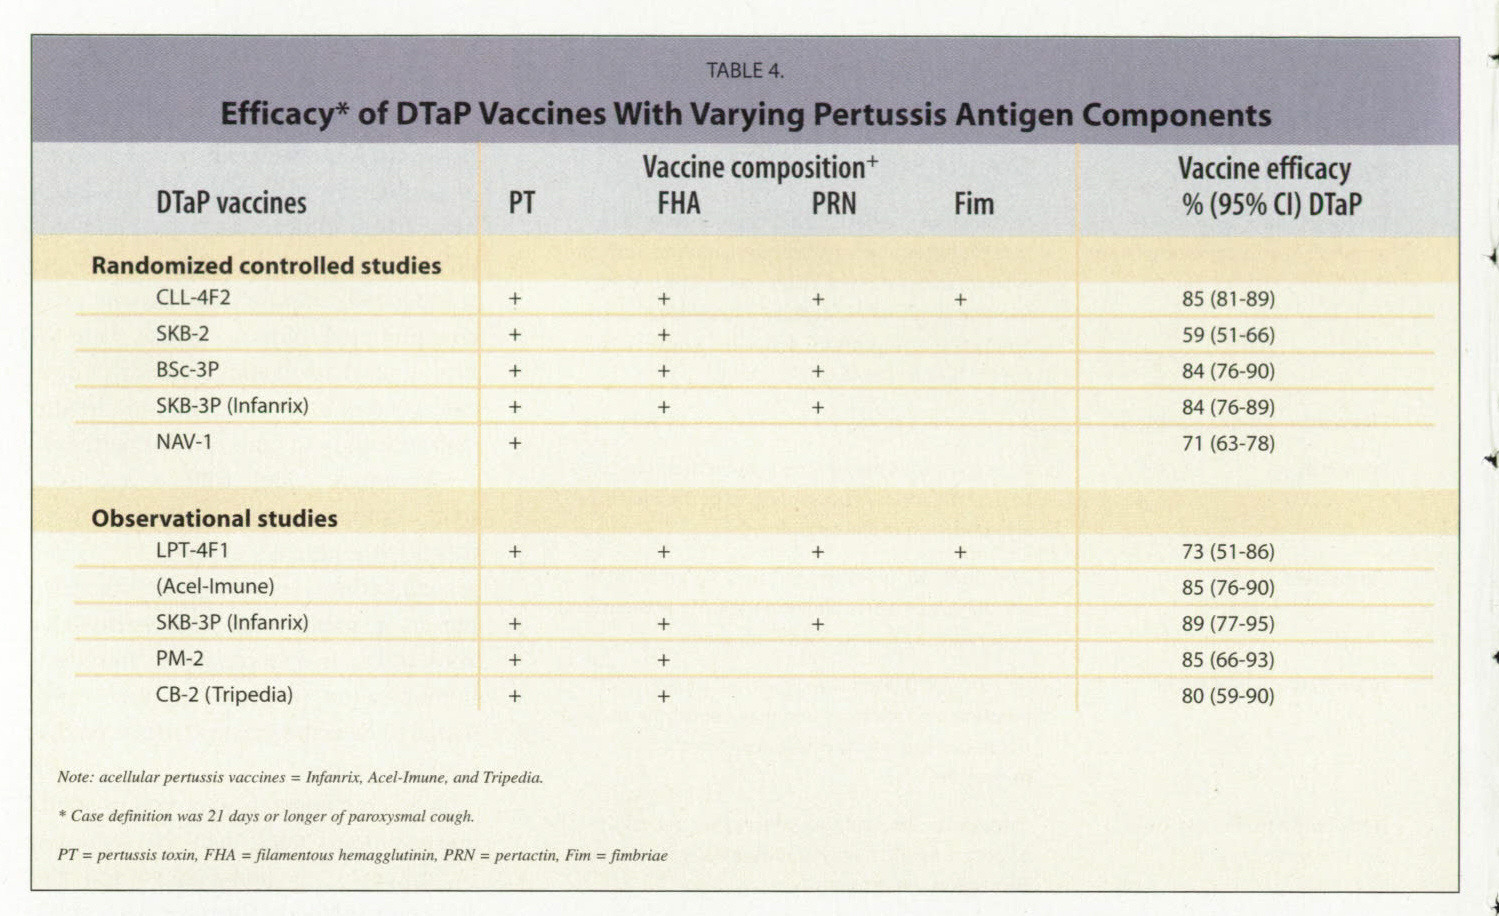 TABLE 4.Efficacy* of DTaP Vaccines With Varying Pertussis Antigen Components